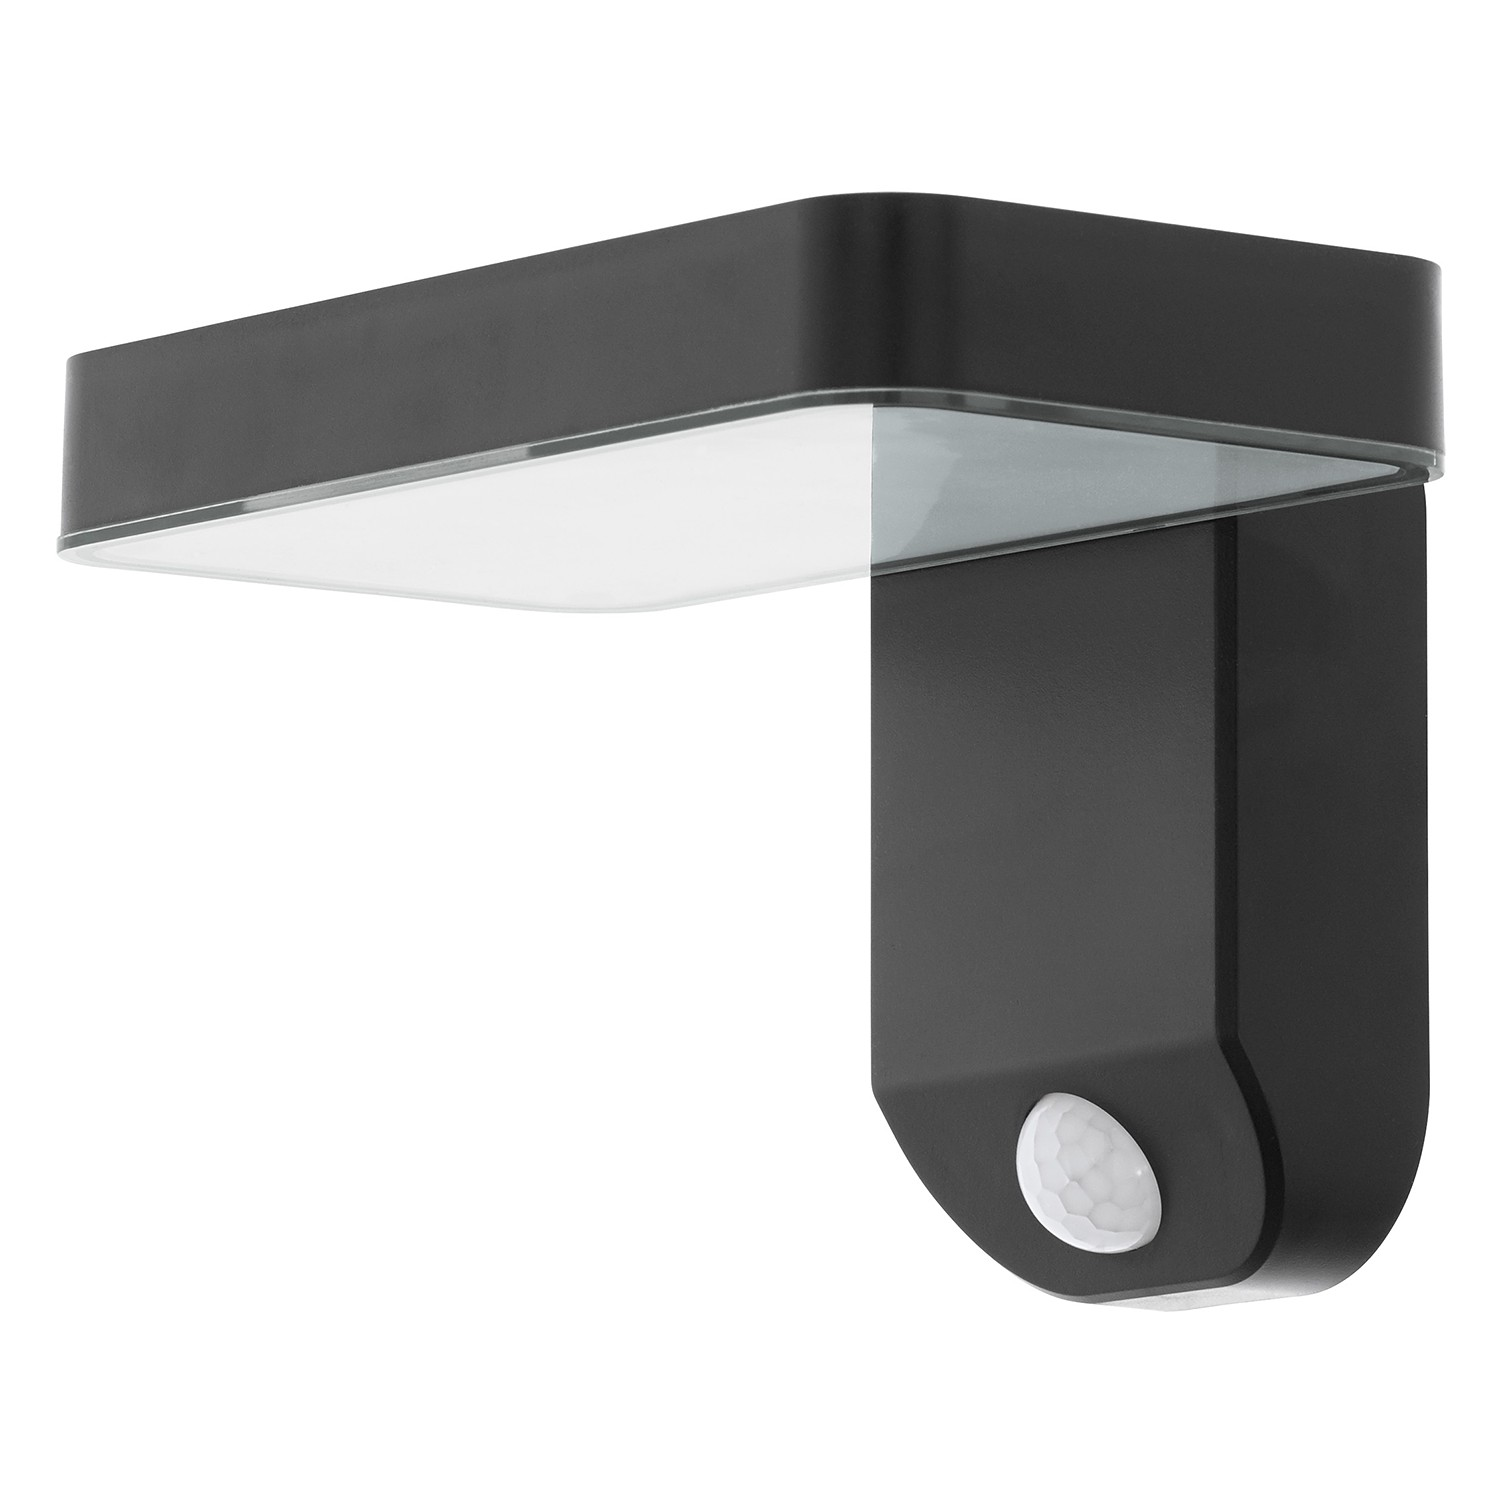 home24 LED-Wandleuchte Pastion